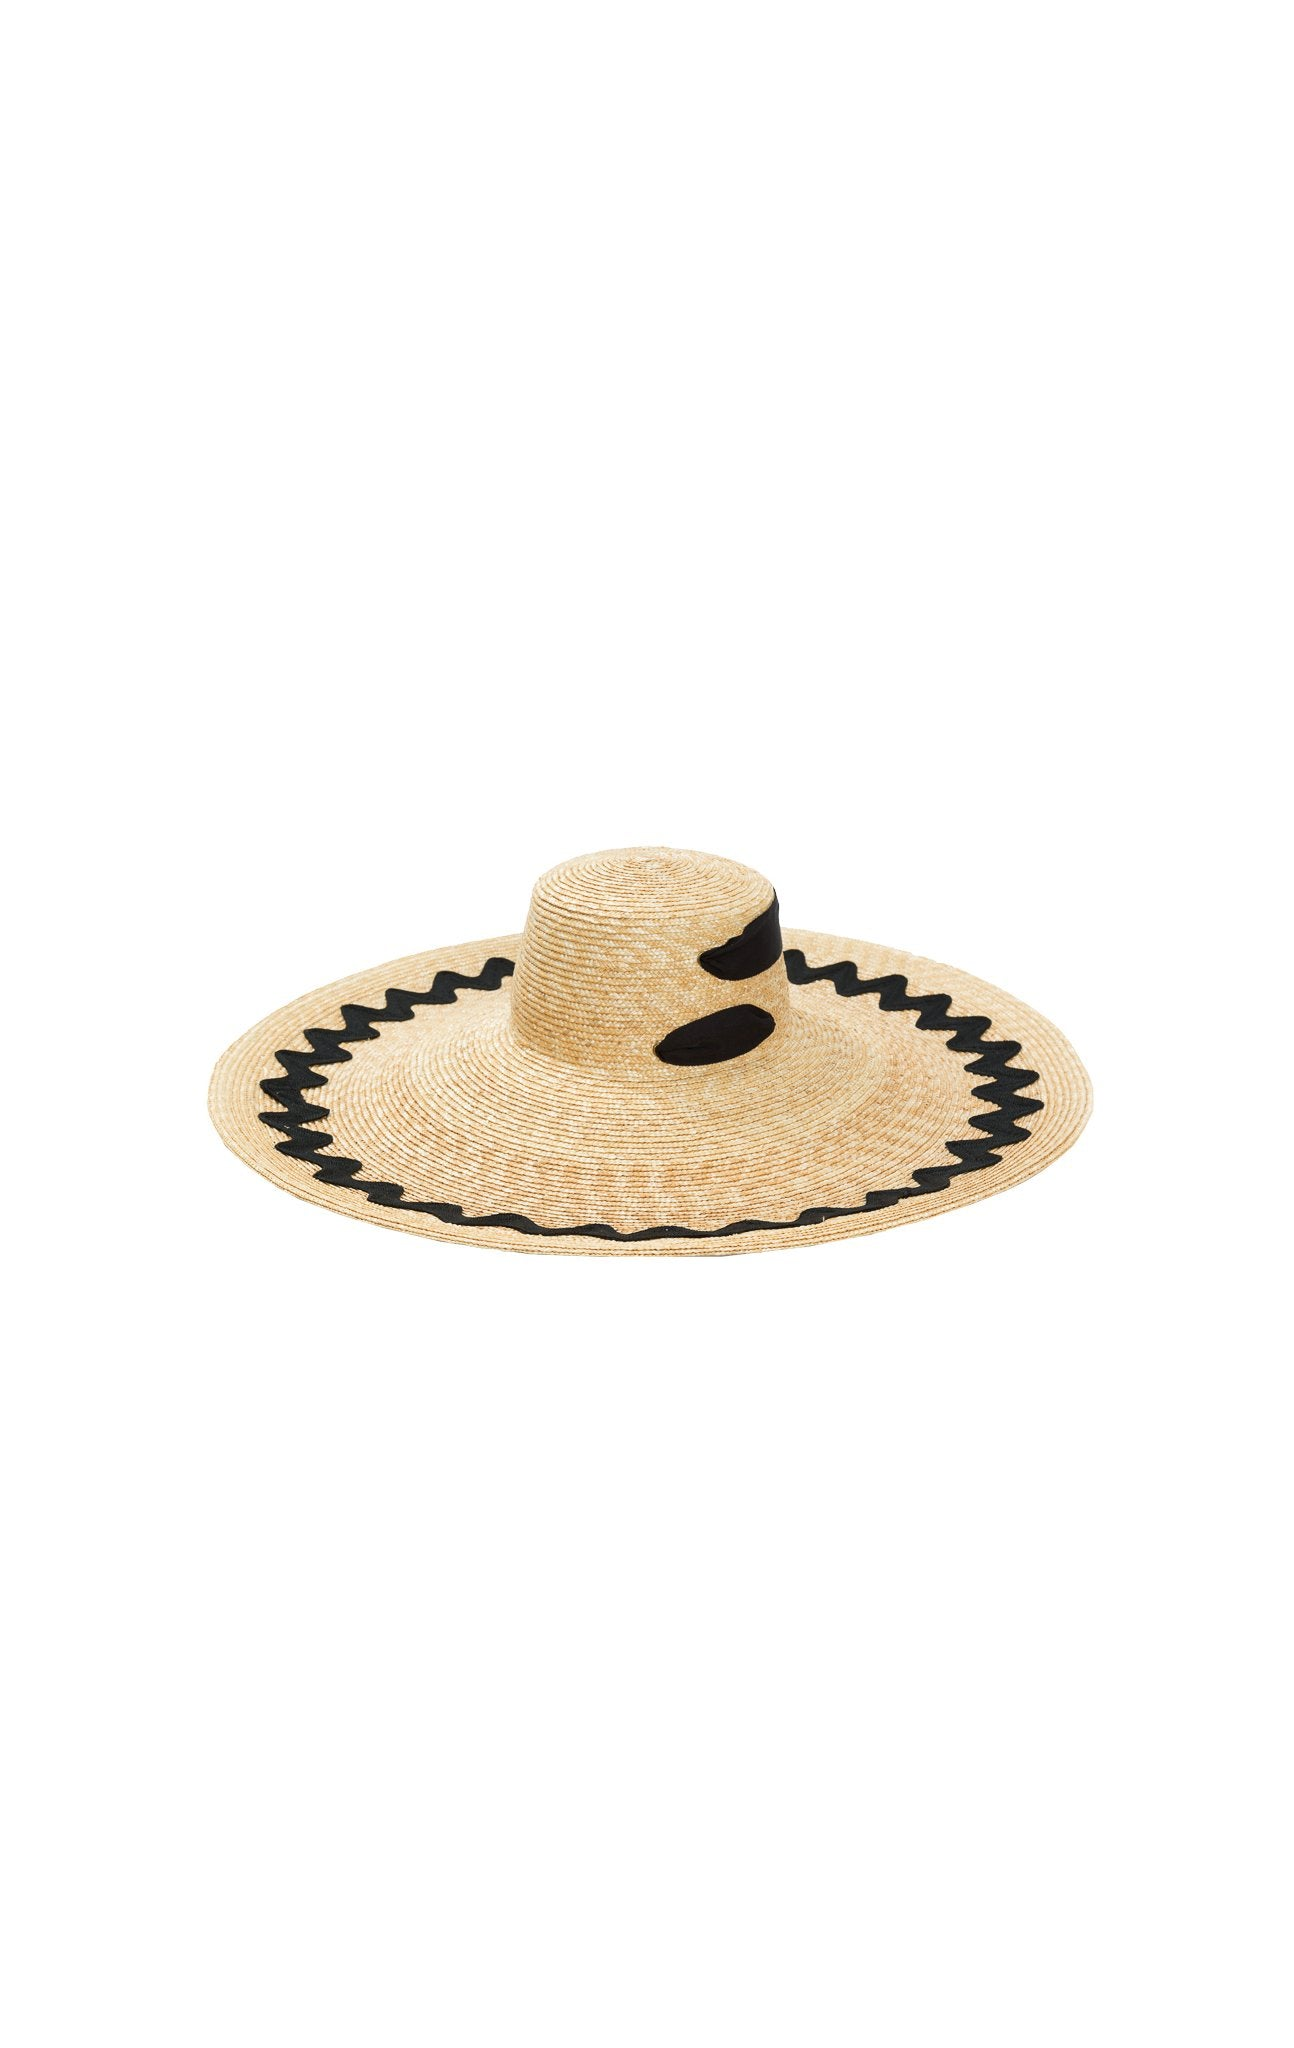 Provencal Hat in Natural/Black